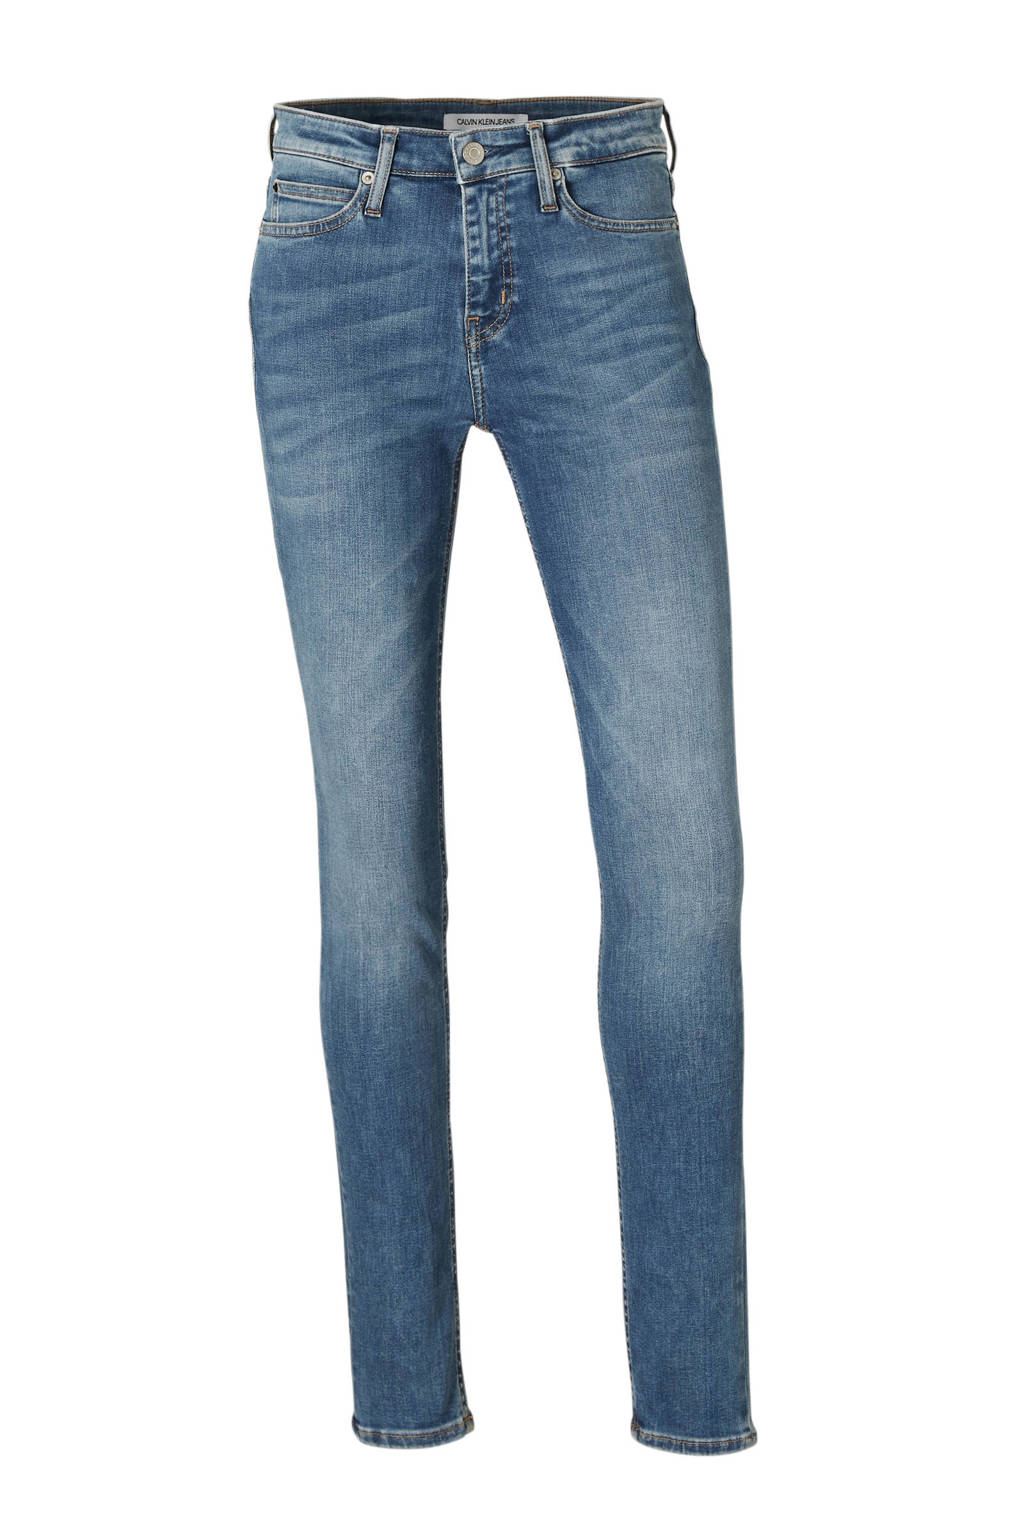 Calvin Klein Jeans skinny fit jeans, Blauw